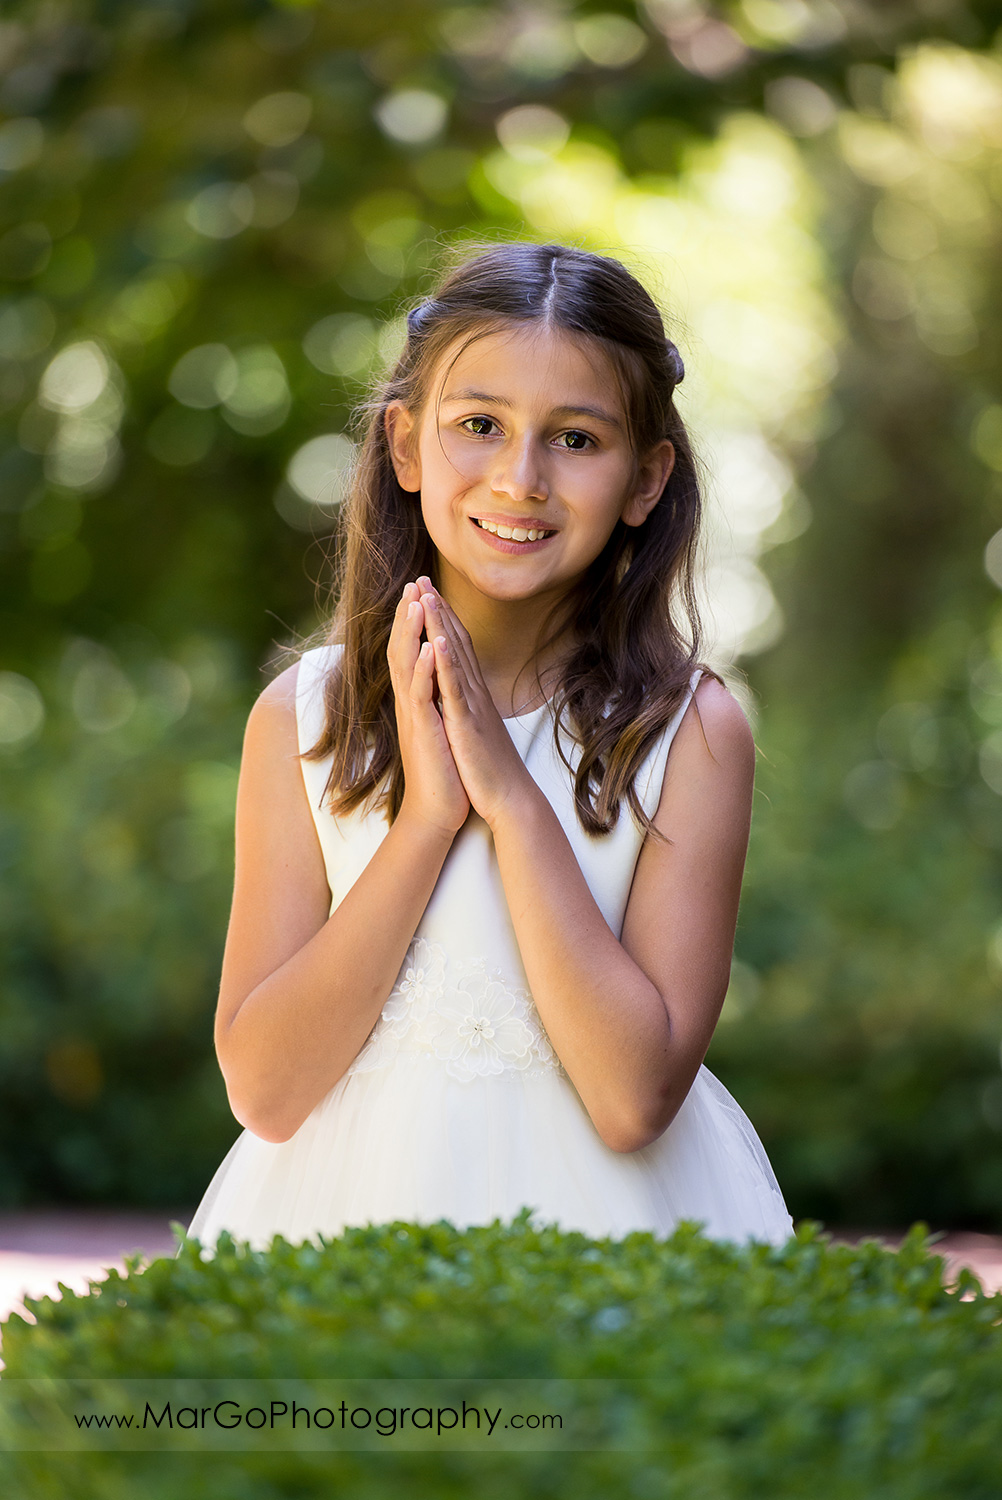 portrait of first communion girl in white dress with folded hands at green background at Cafe Wisteria in Menlo Park